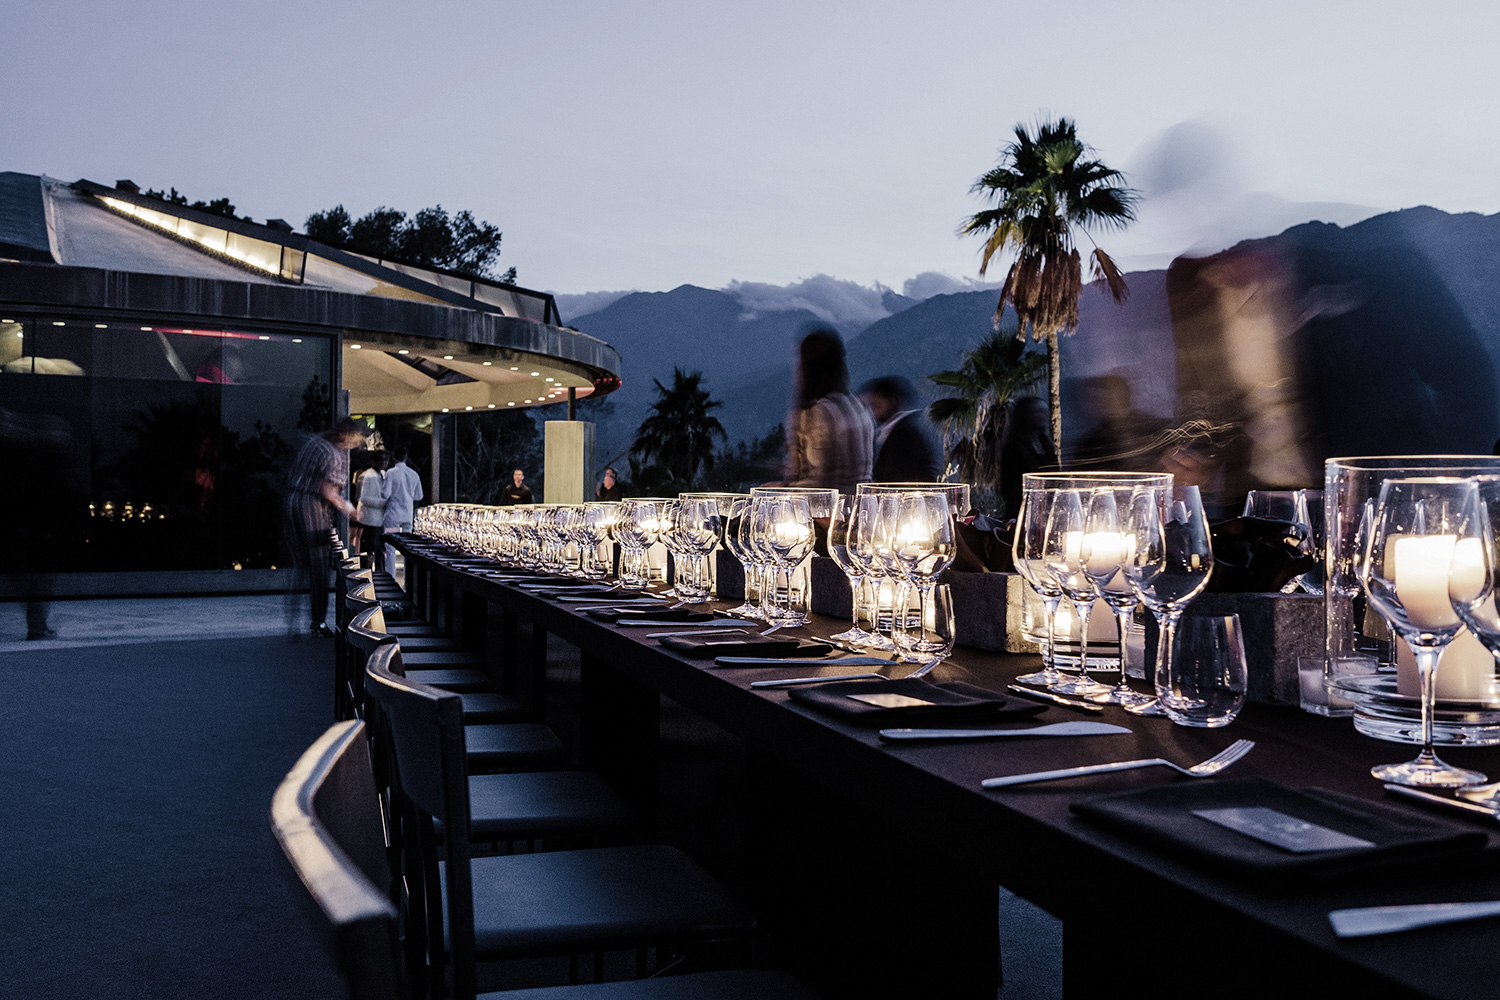 P2 Dinner Experience at  The Elrod House , hosted by Chef de Cave Richard Geoffroy & Chef de Cuisine Pascal Tingaud